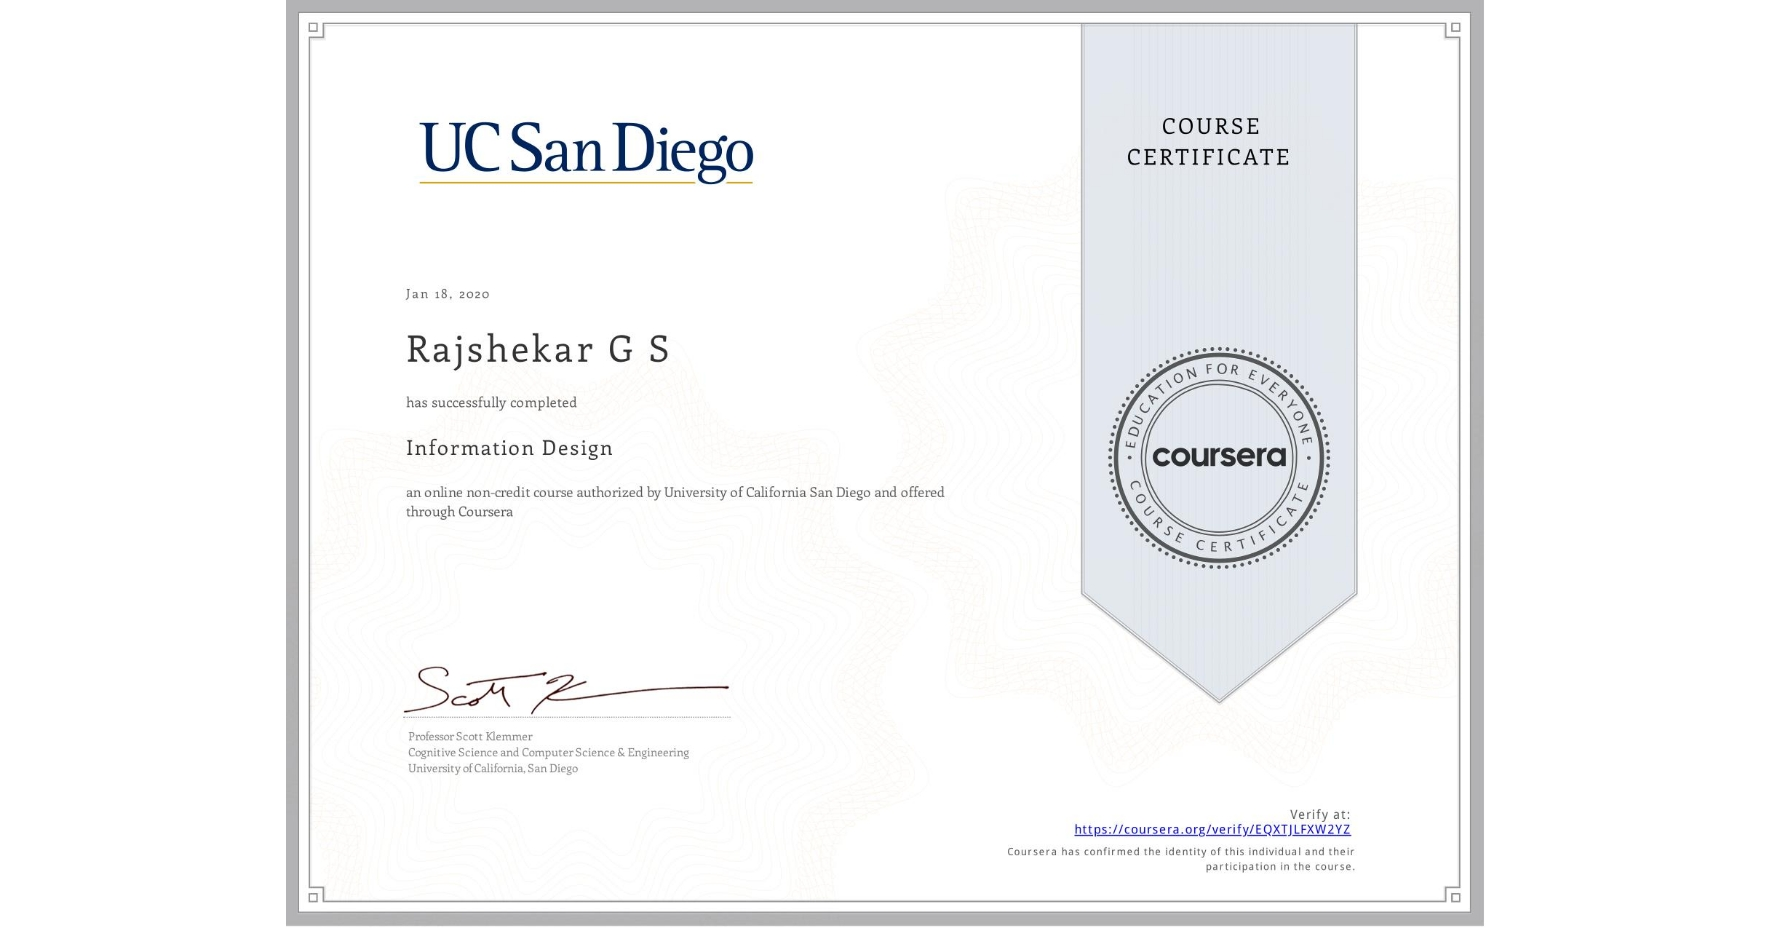 View certificate for Rajshekar G S, Information Design, an online non-credit course authorized by University of California San Diego and offered through Coursera